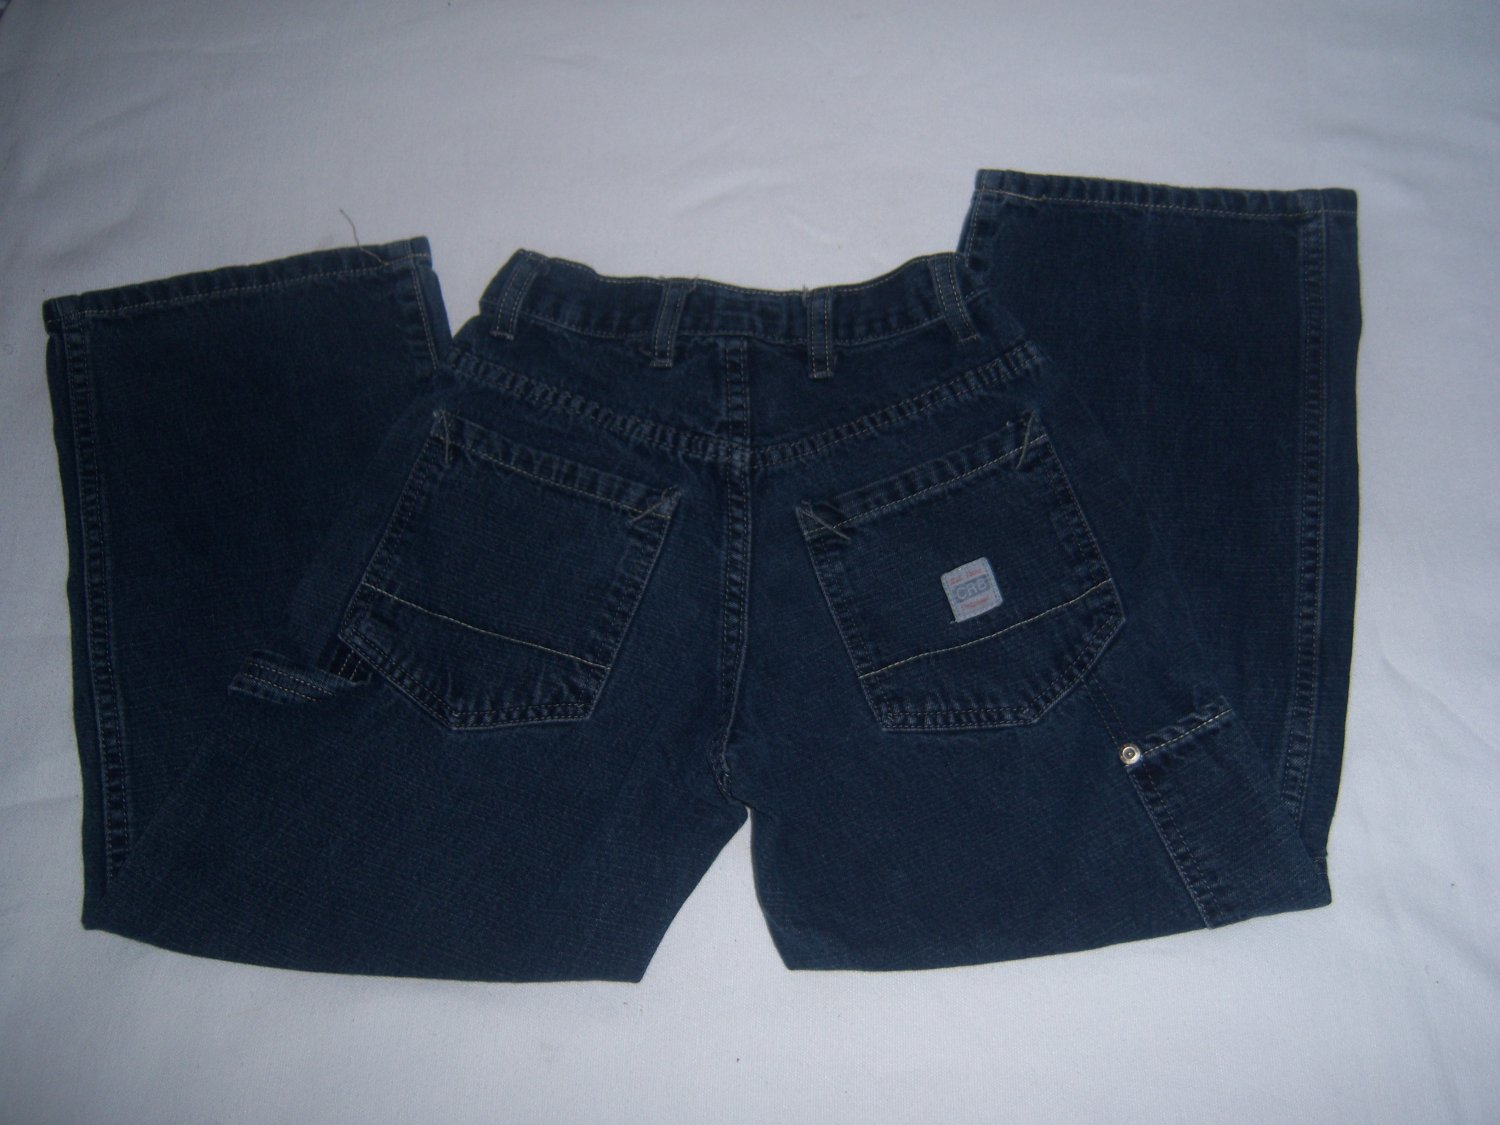 CANNON RIVER BLUES BOYS DRK WASH JEANS SIZE 8 REG